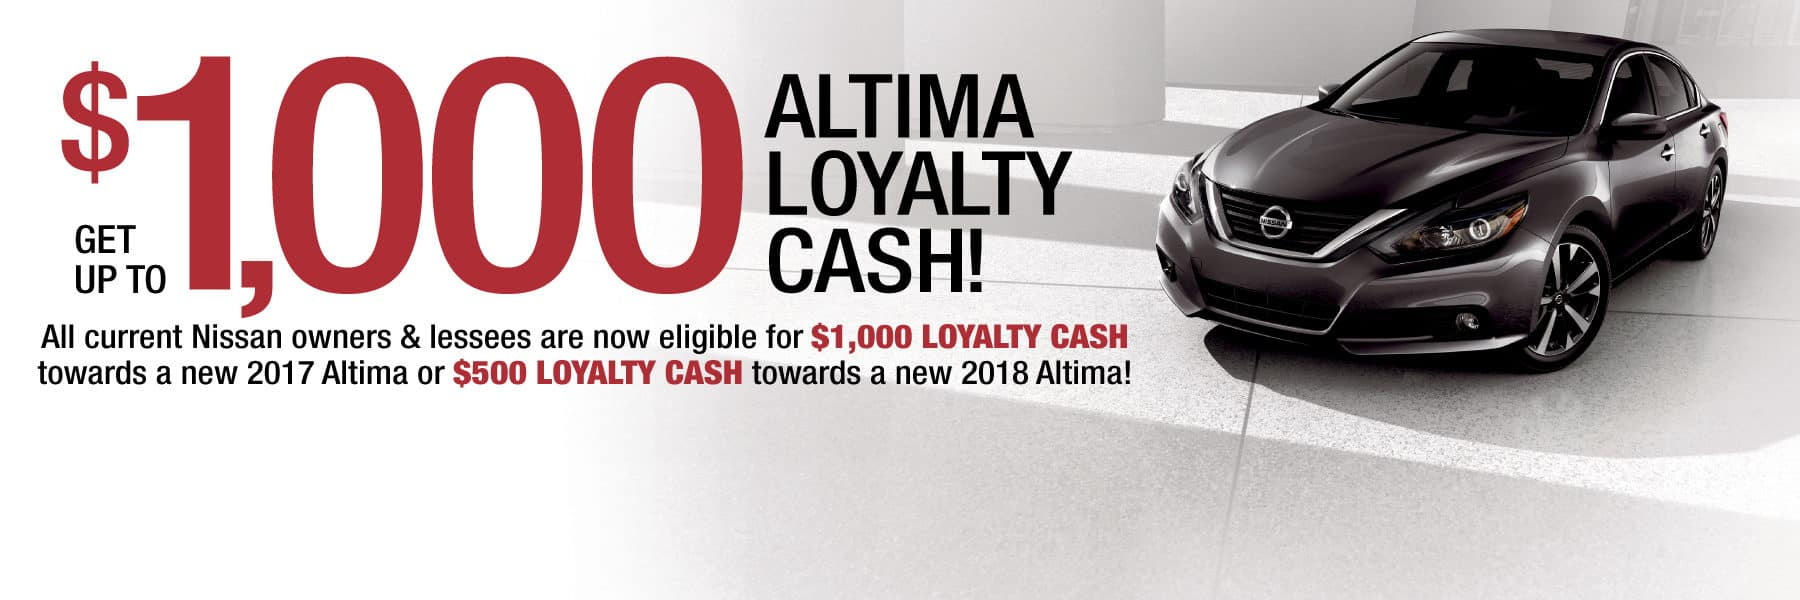 Up to $1,000 Altima Loyalty Cash on New Nissan Altimas!